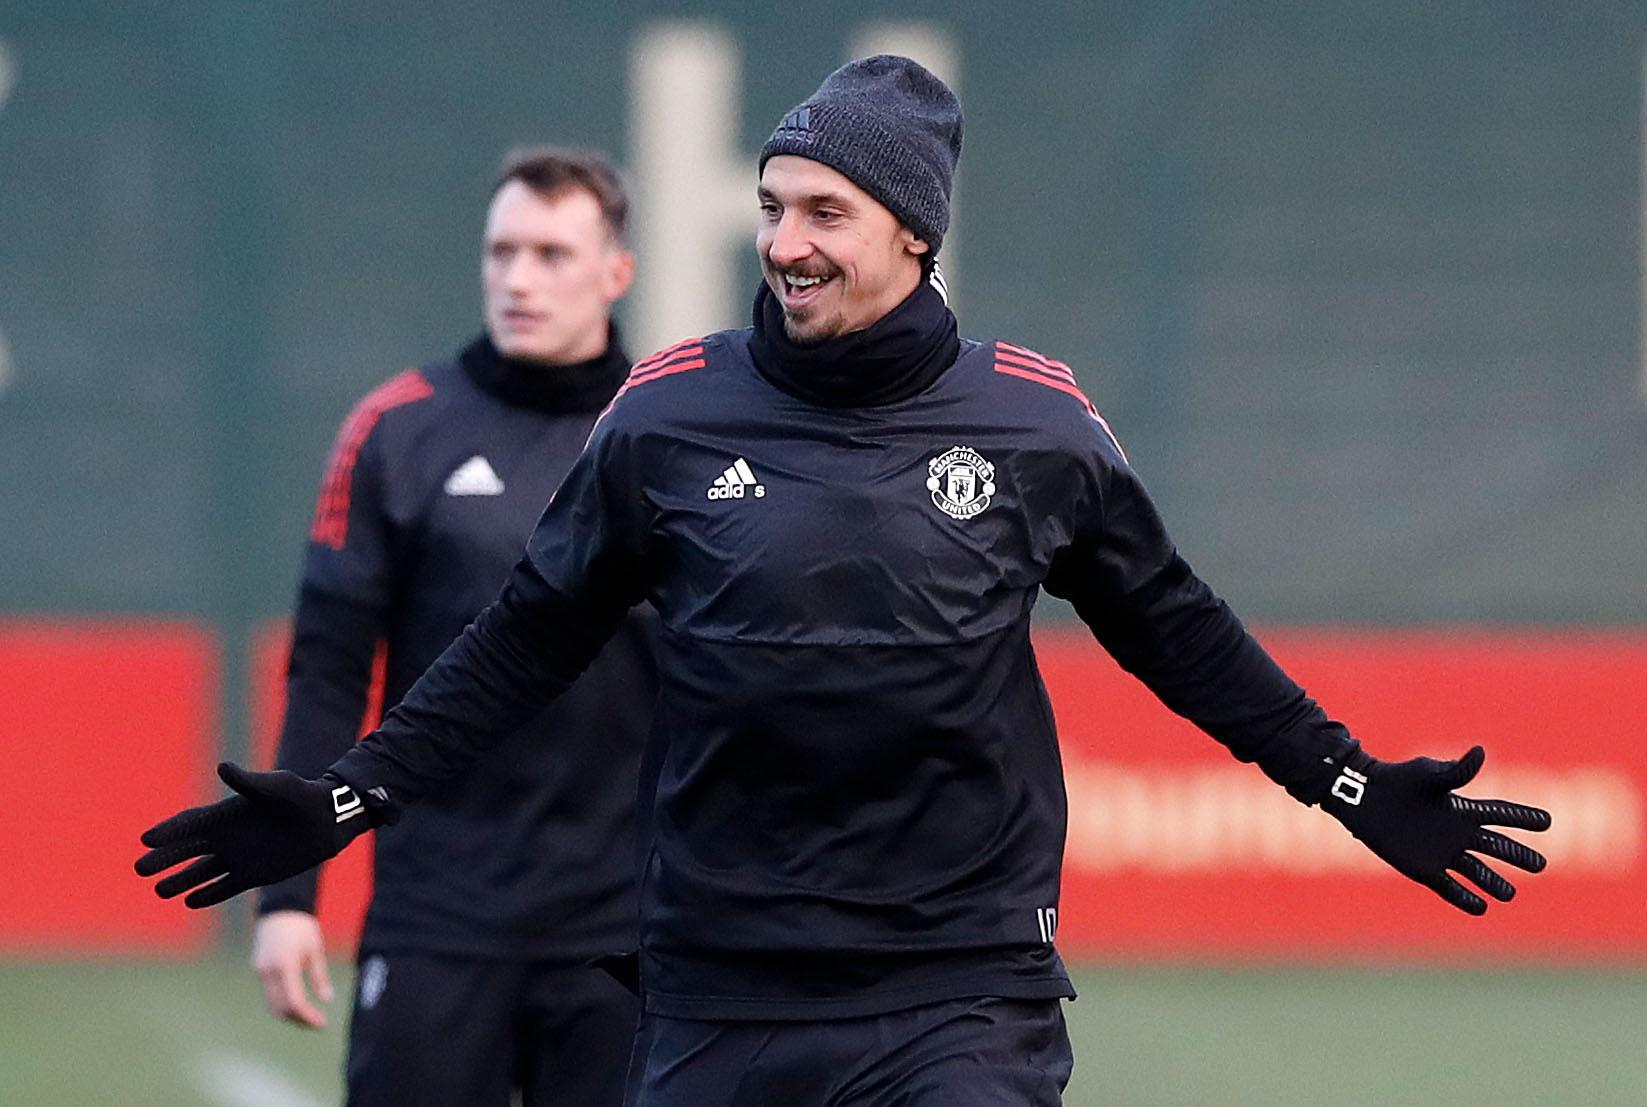 You could fill a book with Zlatan's best quotes